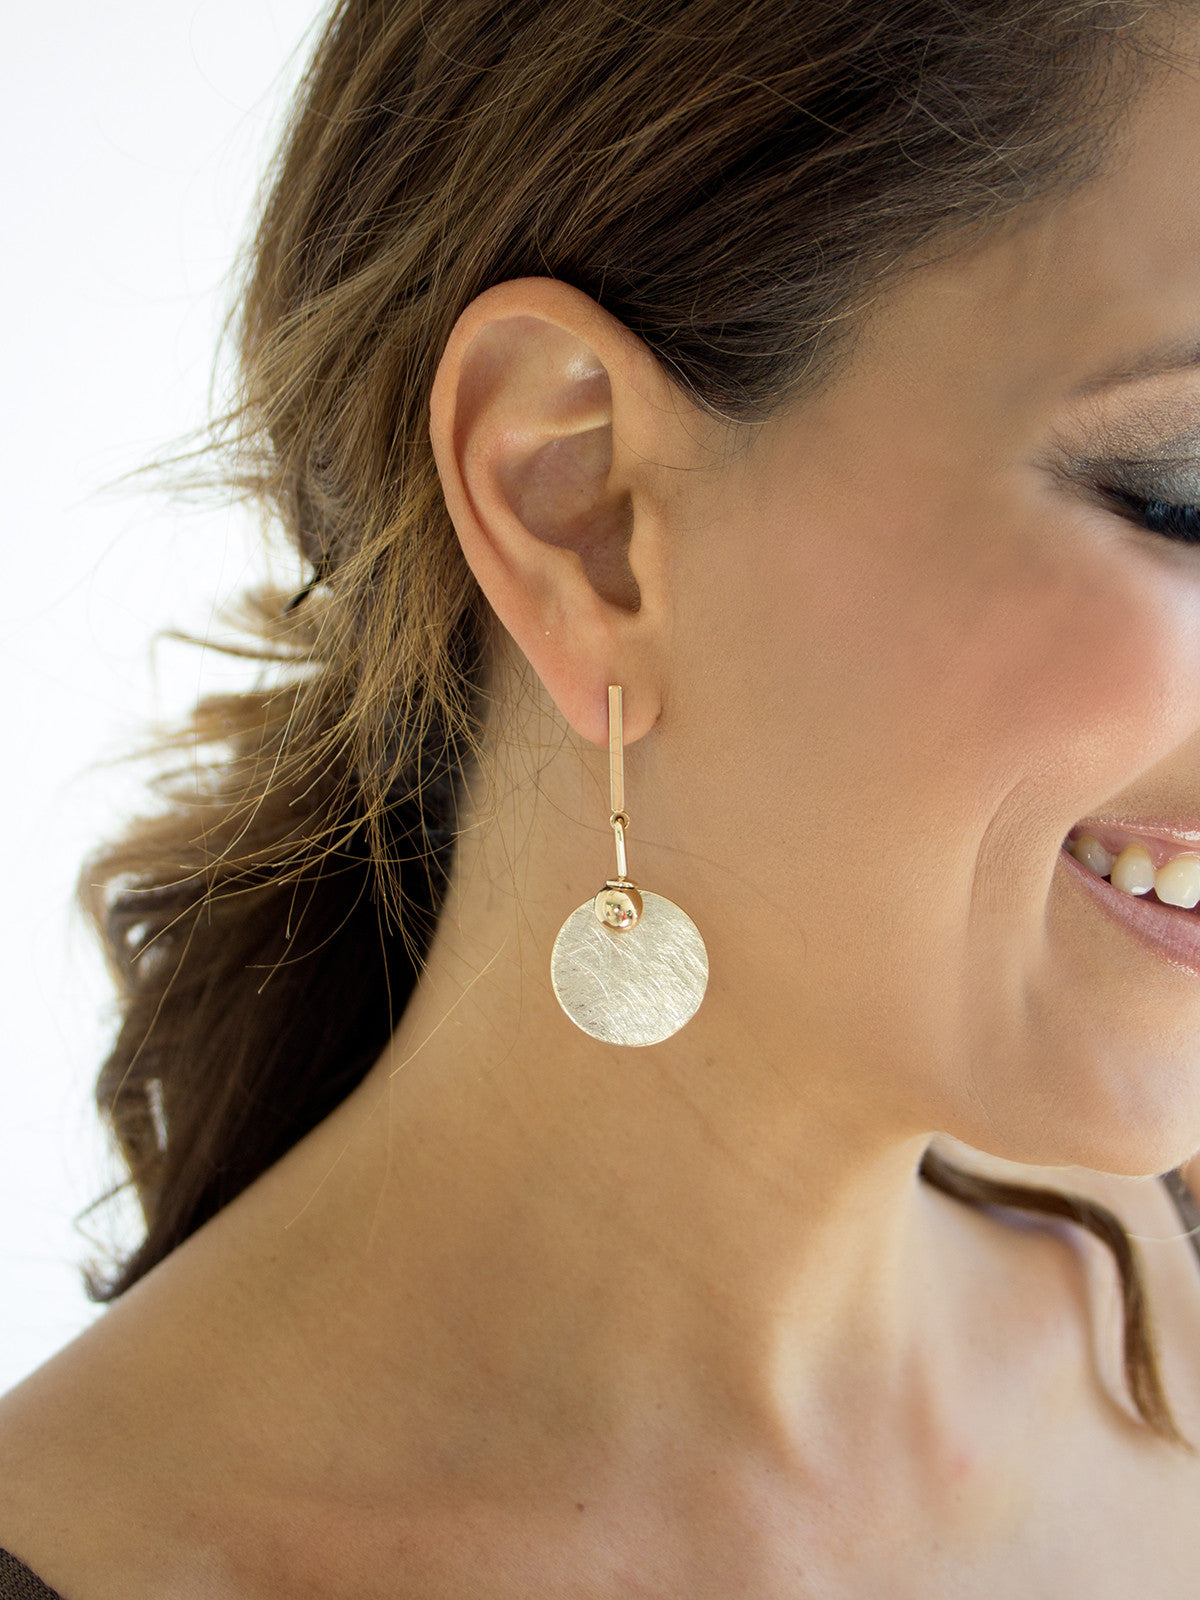 YOU'RE THE ONE LUXE GOLD EARRINGS